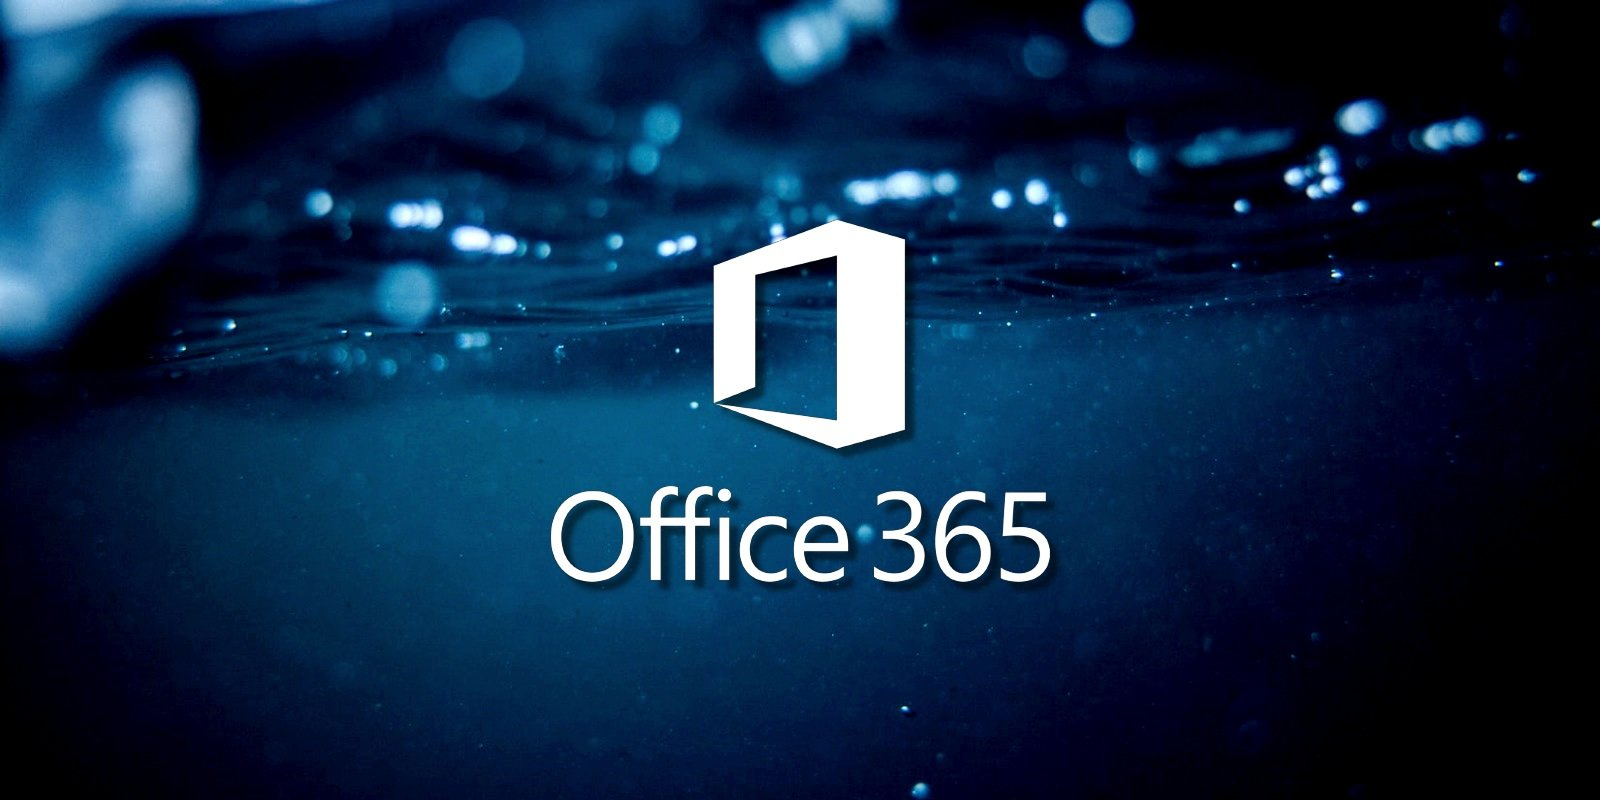 Office 365 phishing campaign detects sandboxes to evade detection